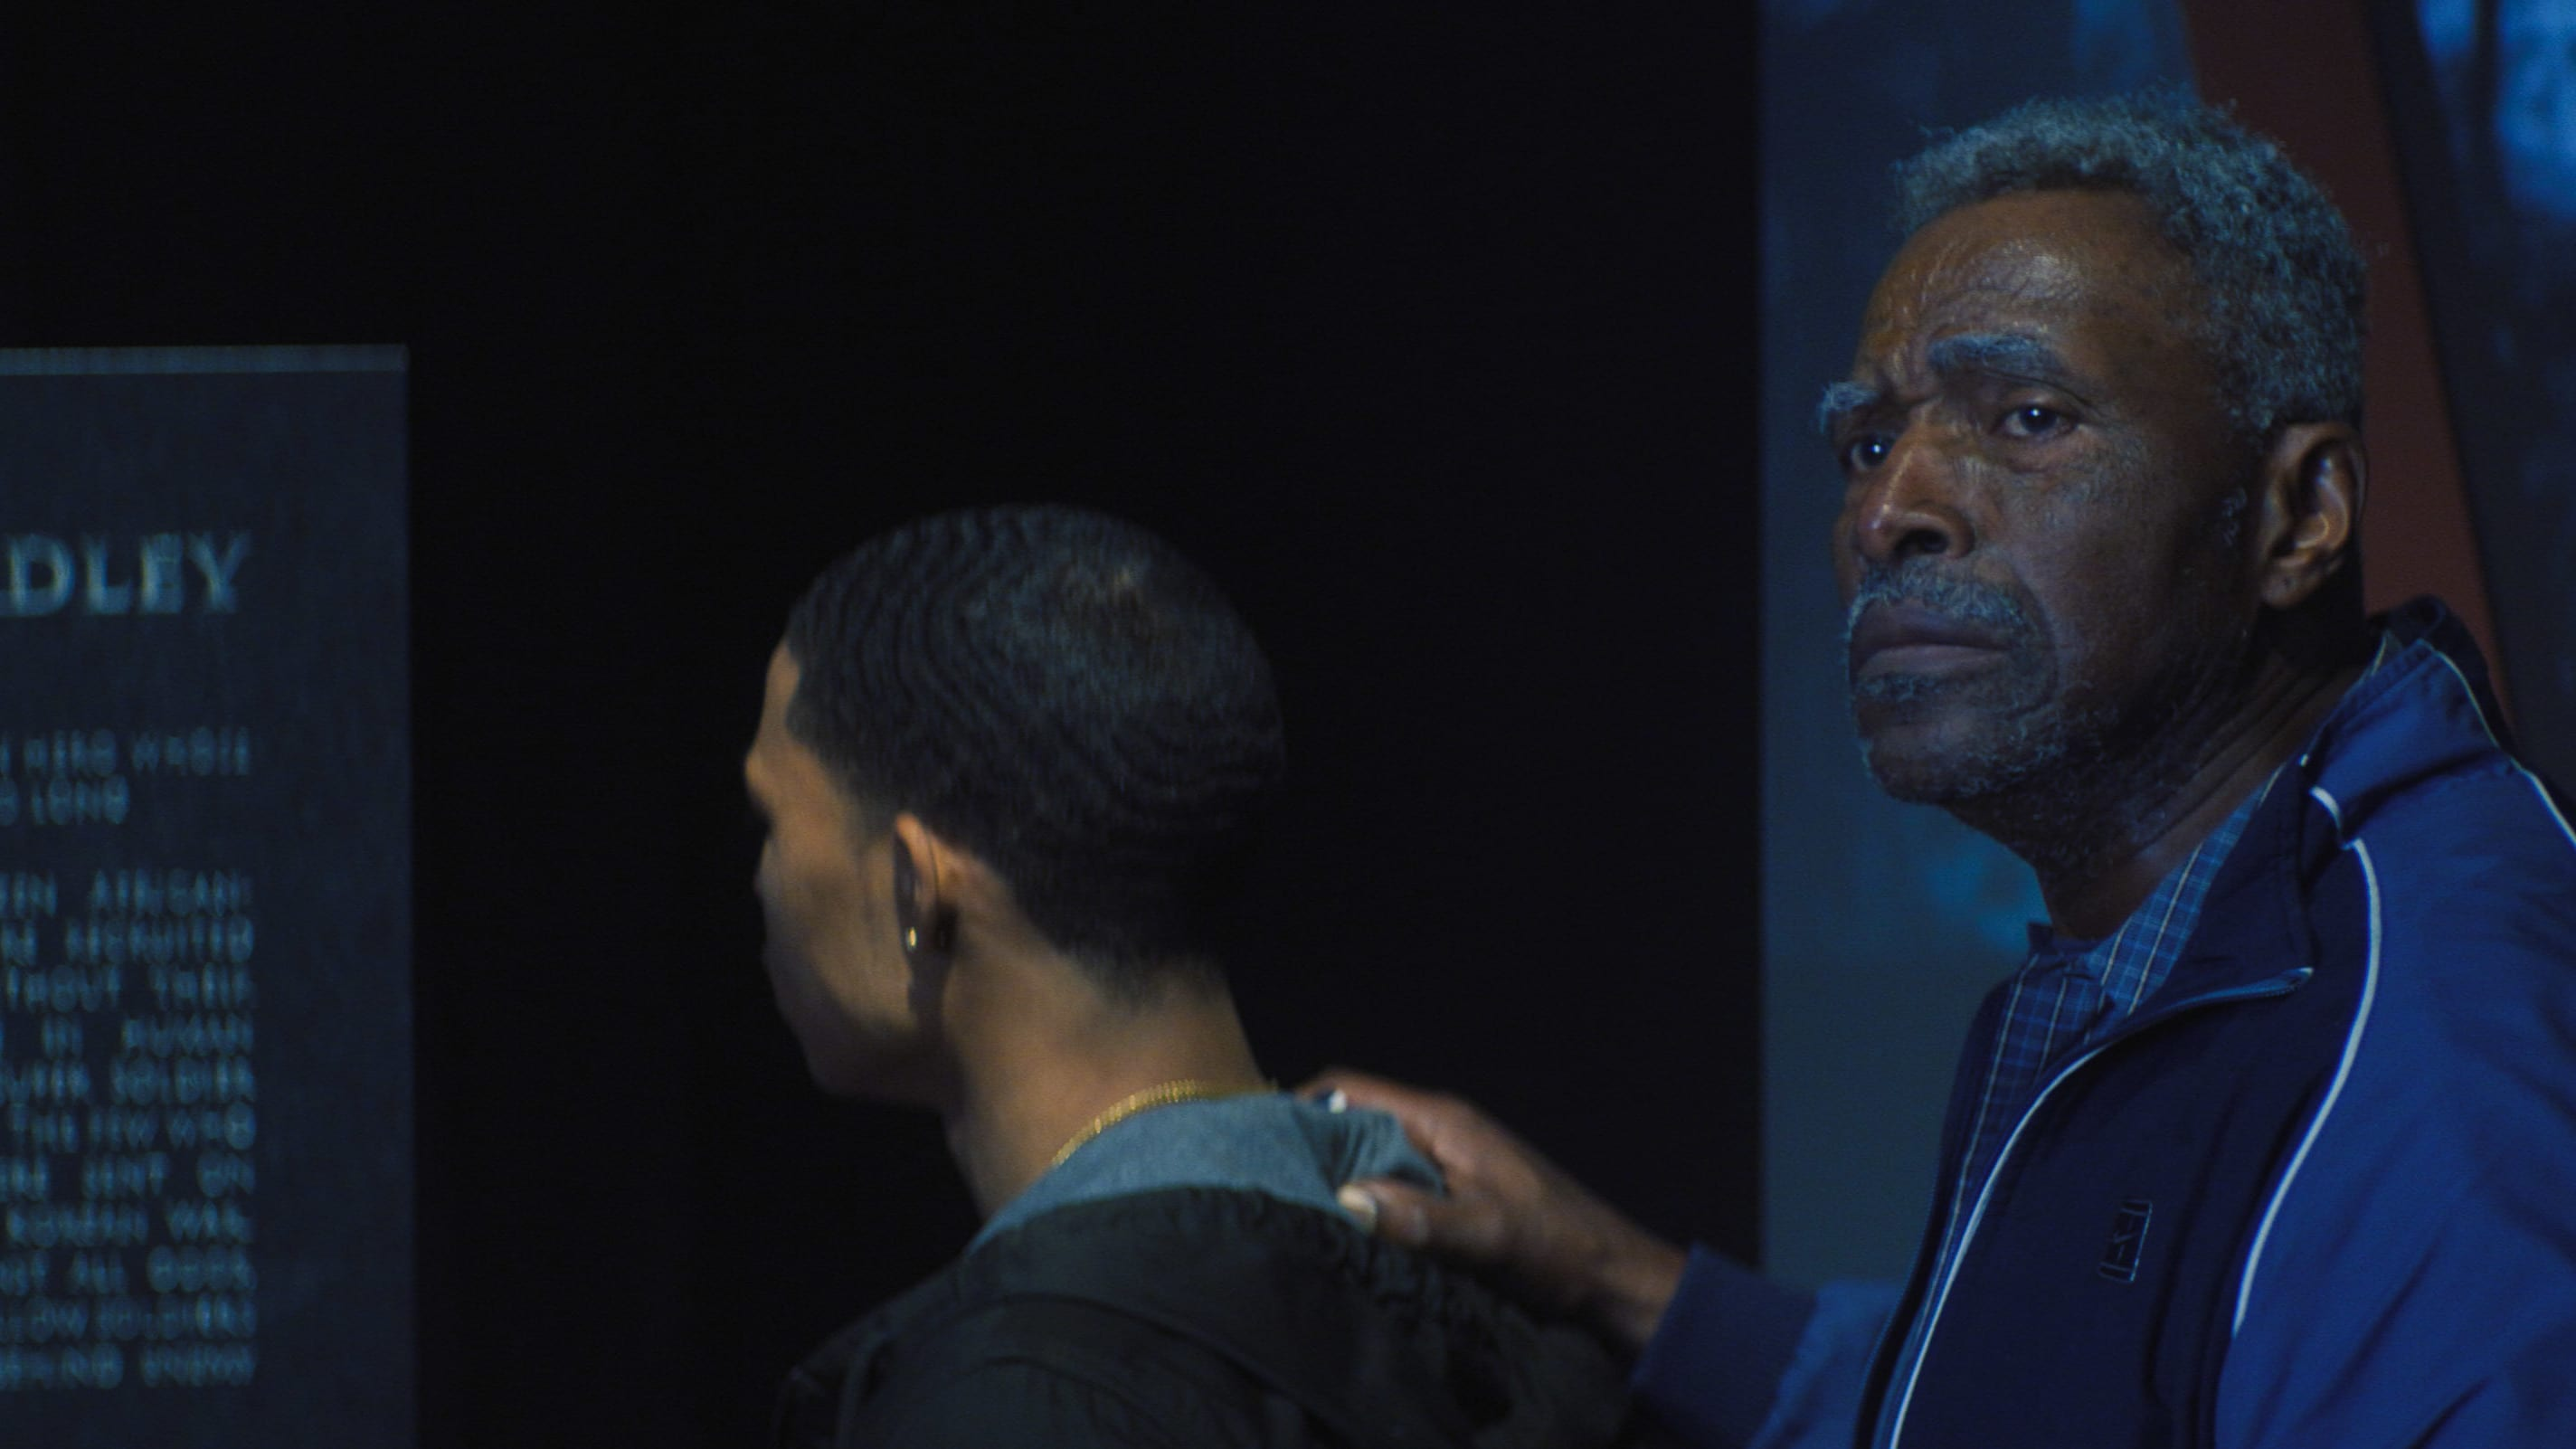 (L-R): Eli Bradley (Elijah Richardson) and Isaiah Bradley (Carl Lumbly) in Marvel Studios' THE FALCON AND THE WINTER SOLDIER exclusively on Disney+. Photo courtesy of Marvel Studios. ©Marvel Studios 2021. All Rights Reserved.